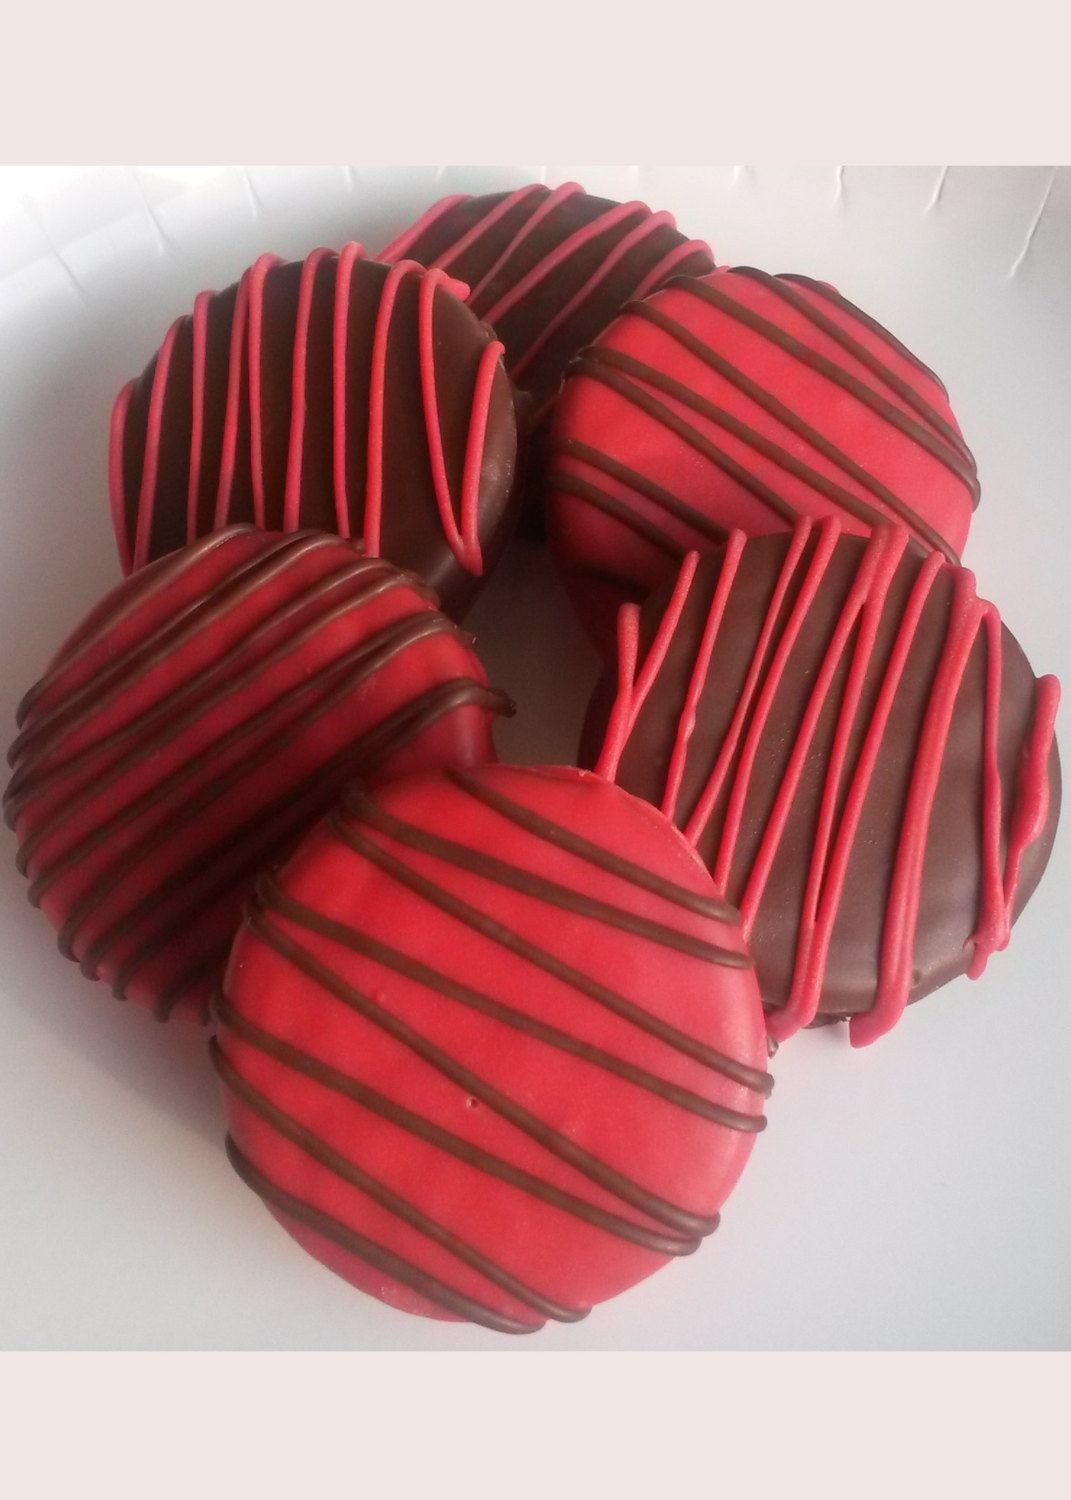 12 Red and Black Chocolate Covered Oreo Cookies - White and Milk ...